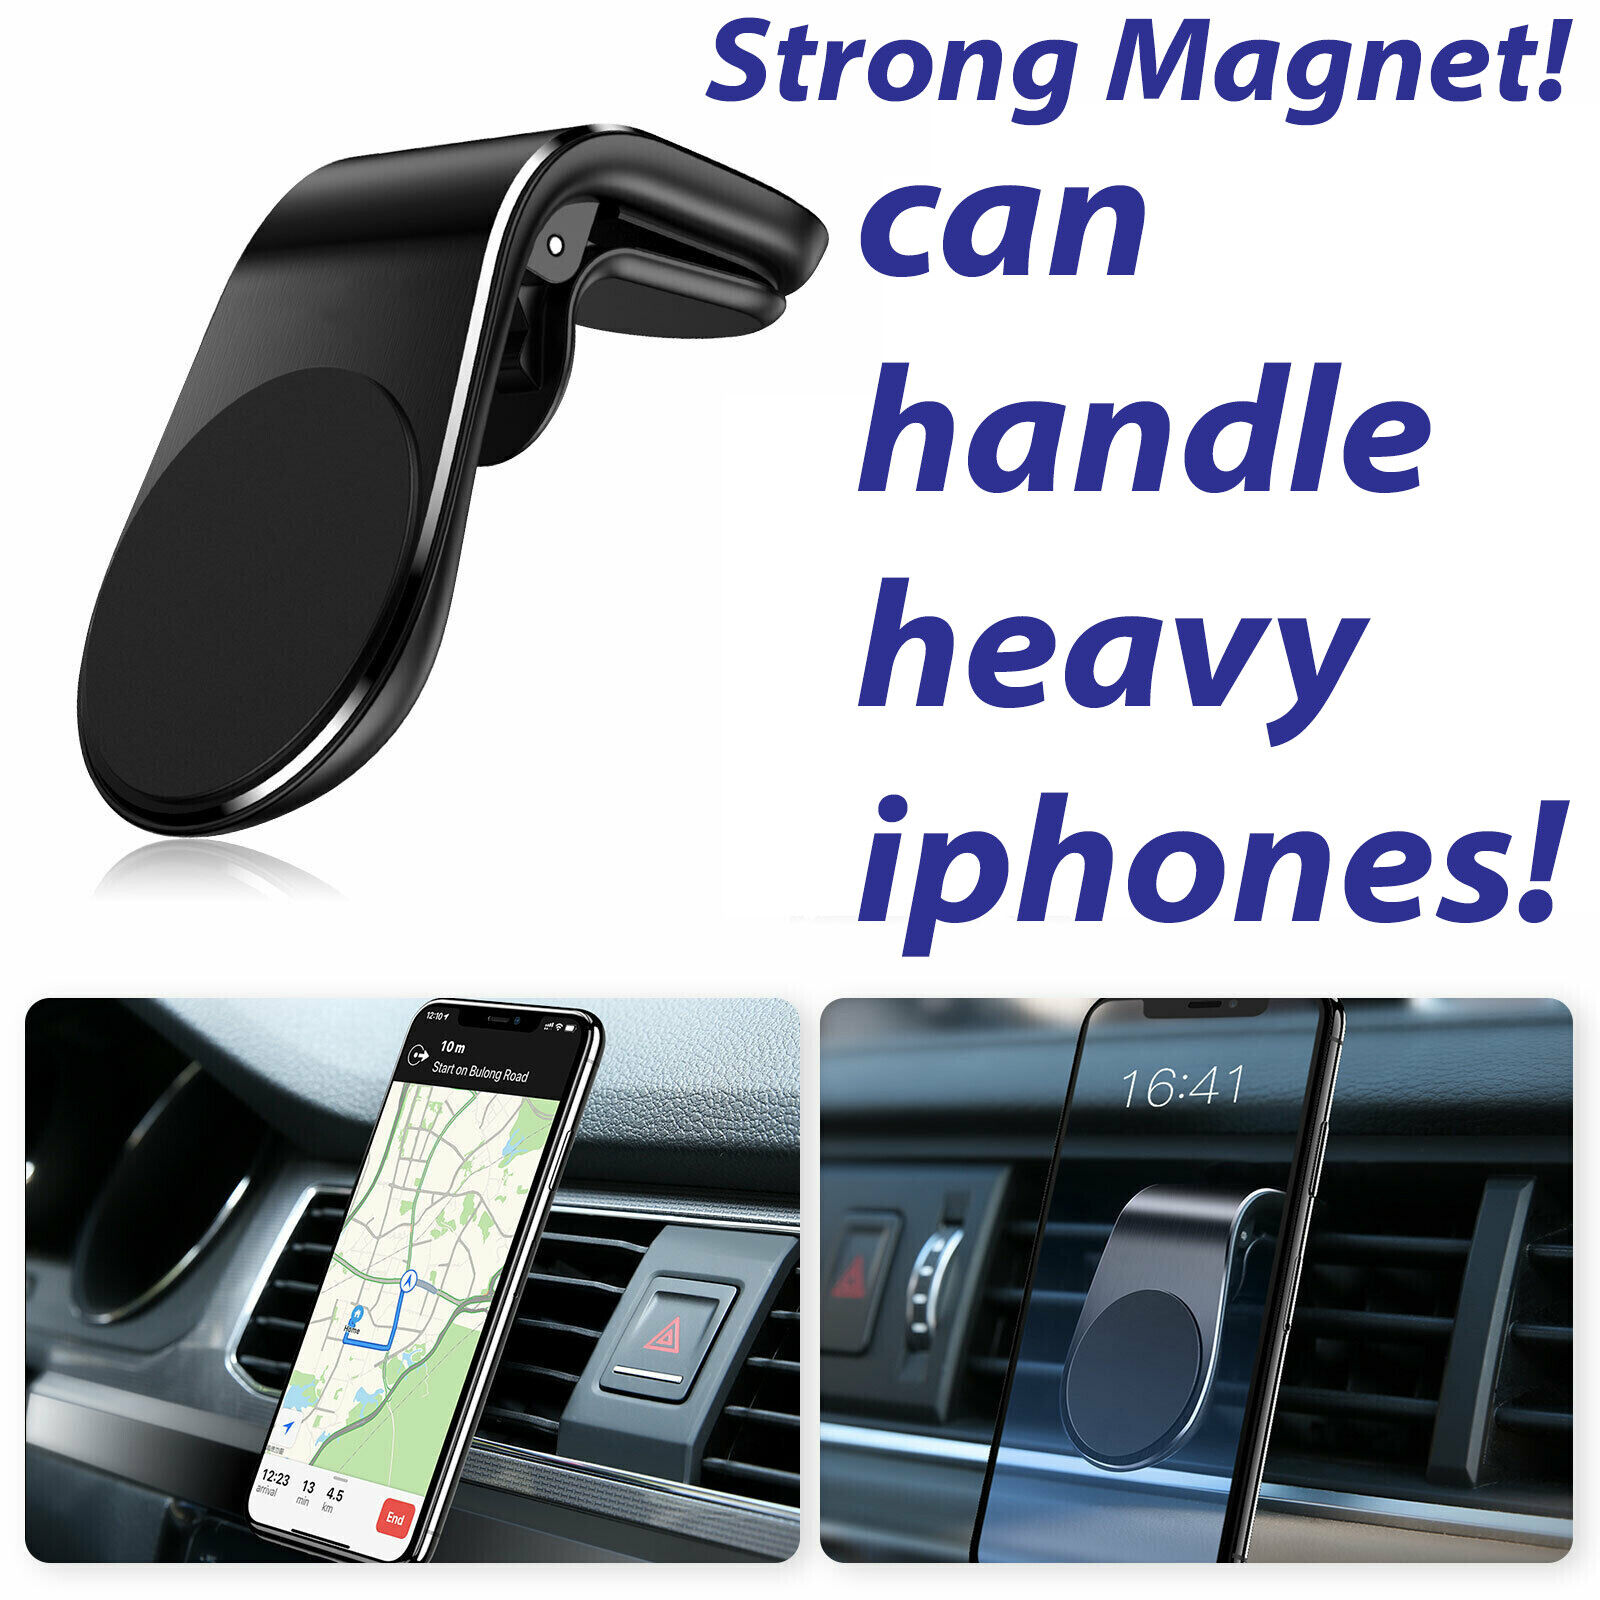 Car Magnet Magnetic Air Vent Mount Holder For Samsung Galaxy S8,S9,S10,S10E Plus Cell Phone Accessories